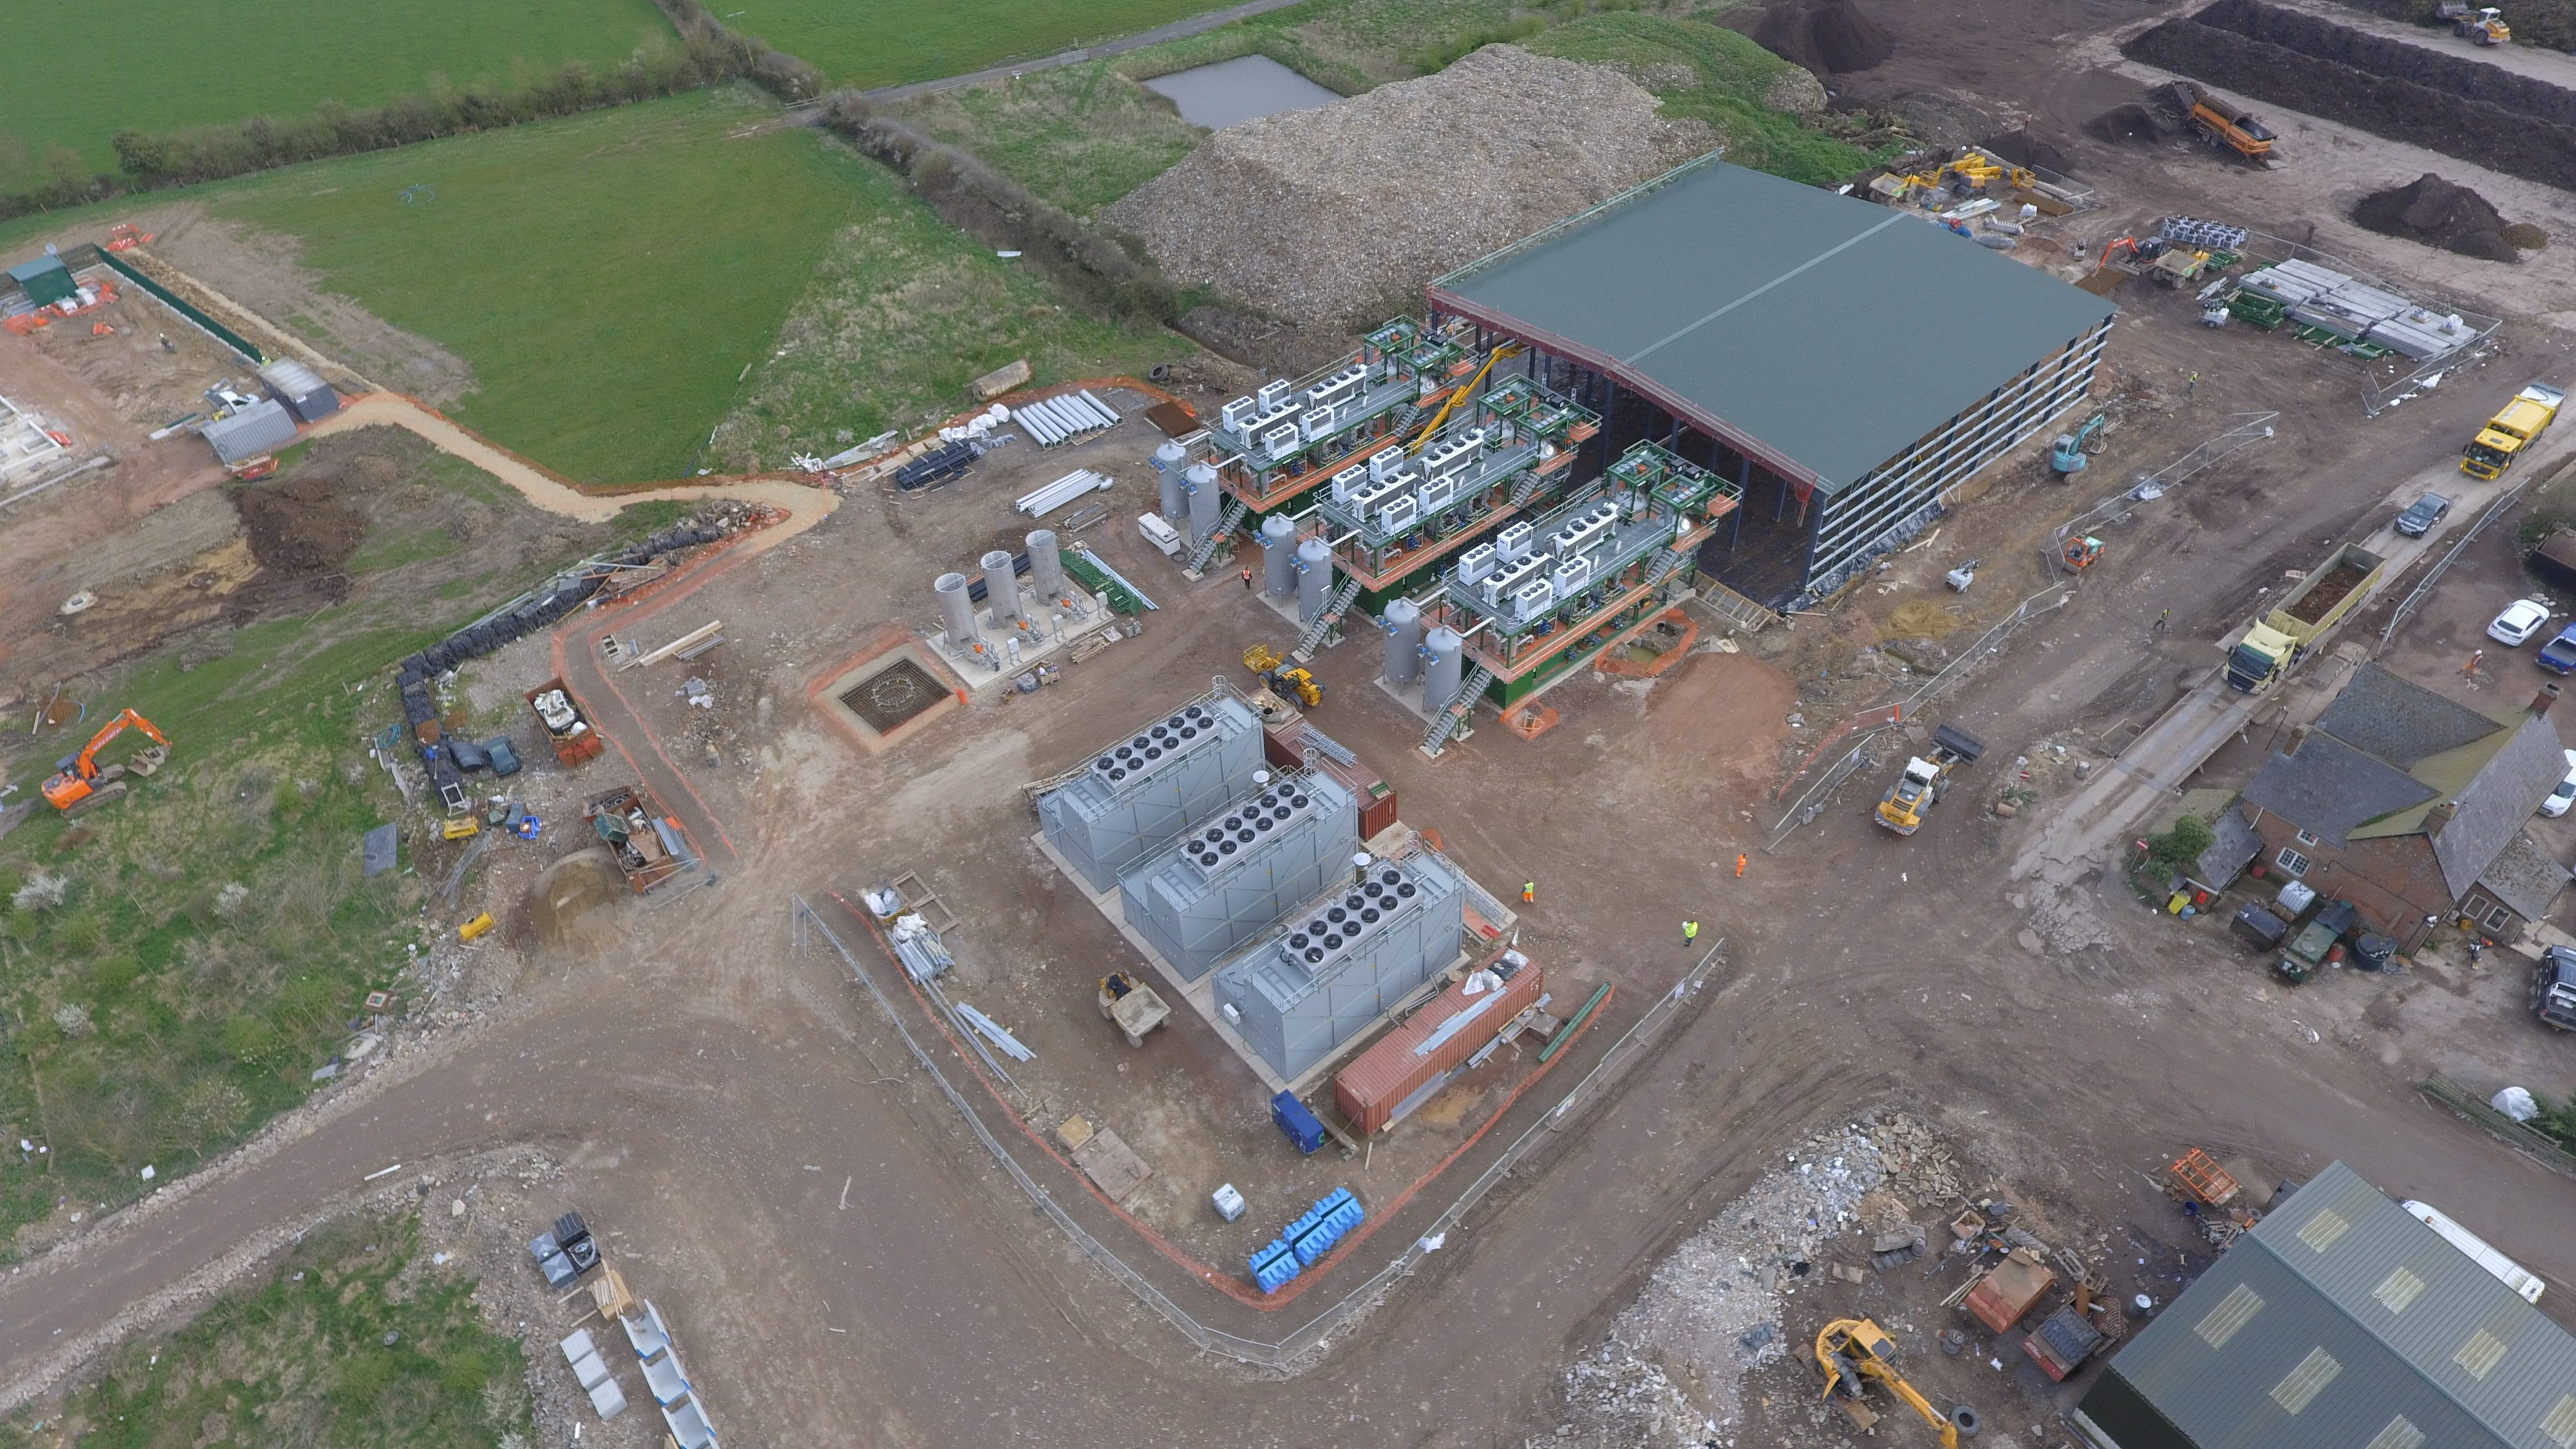 Swindon Energy Aerial View 4